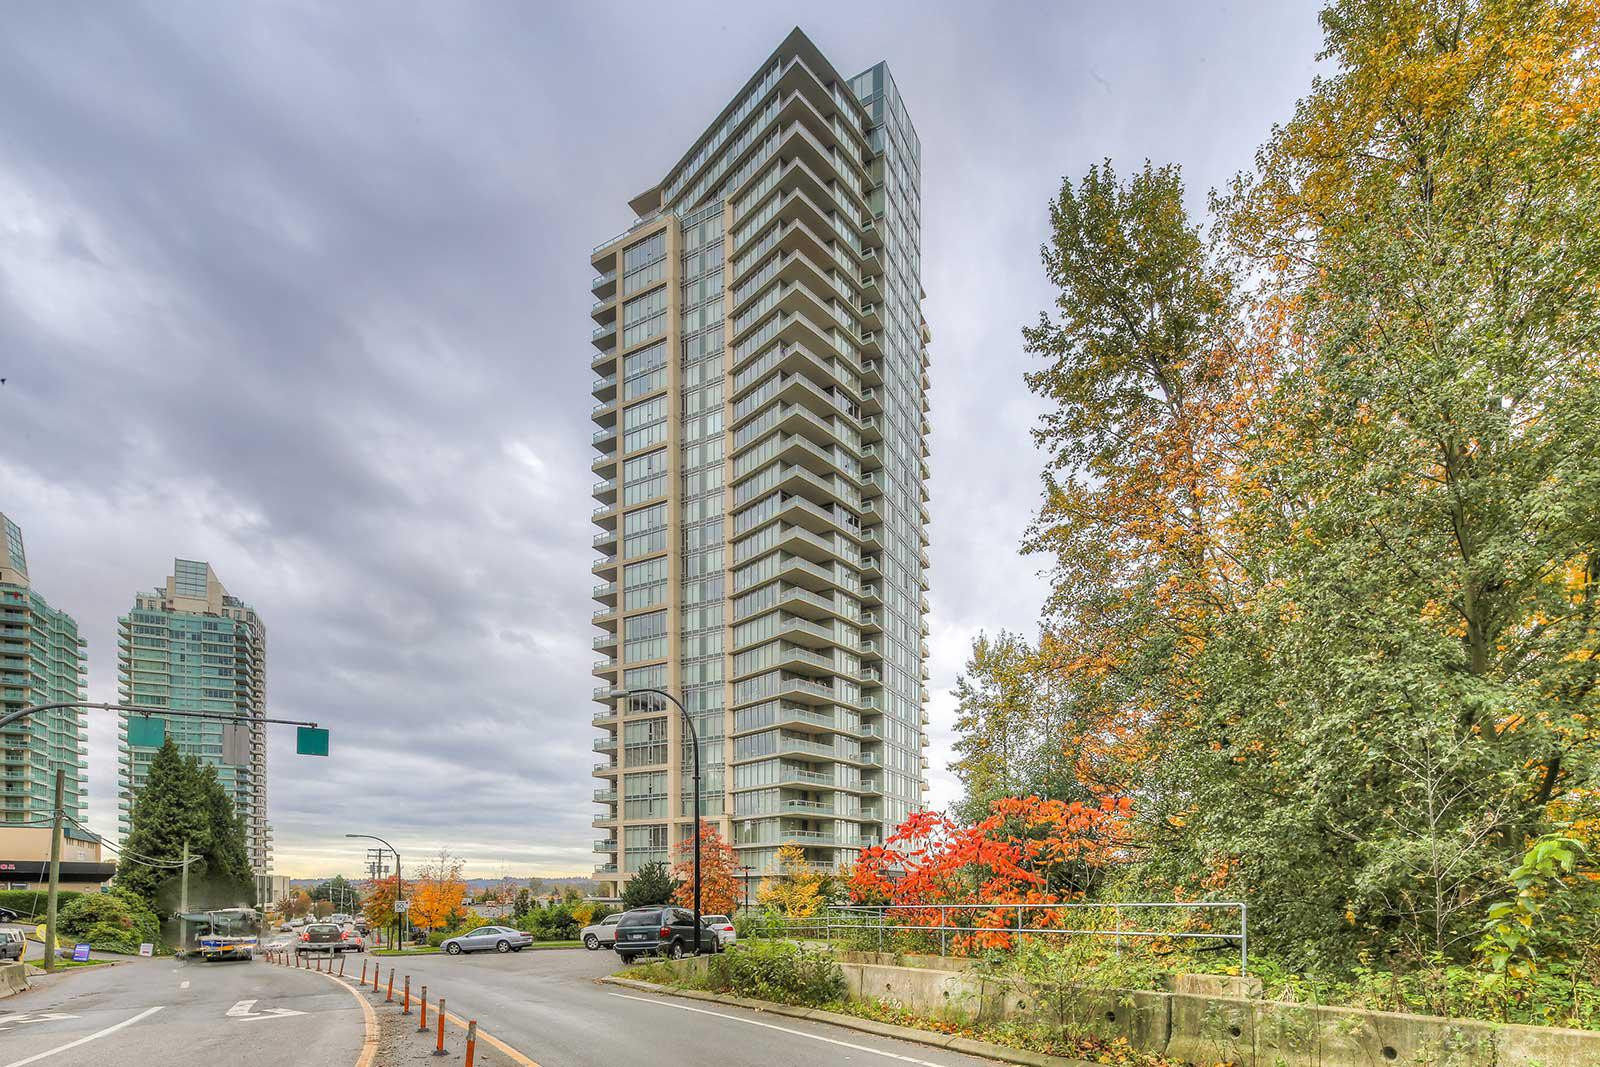 Perspectives at 2133 Douglas Rd, Burnaby 0